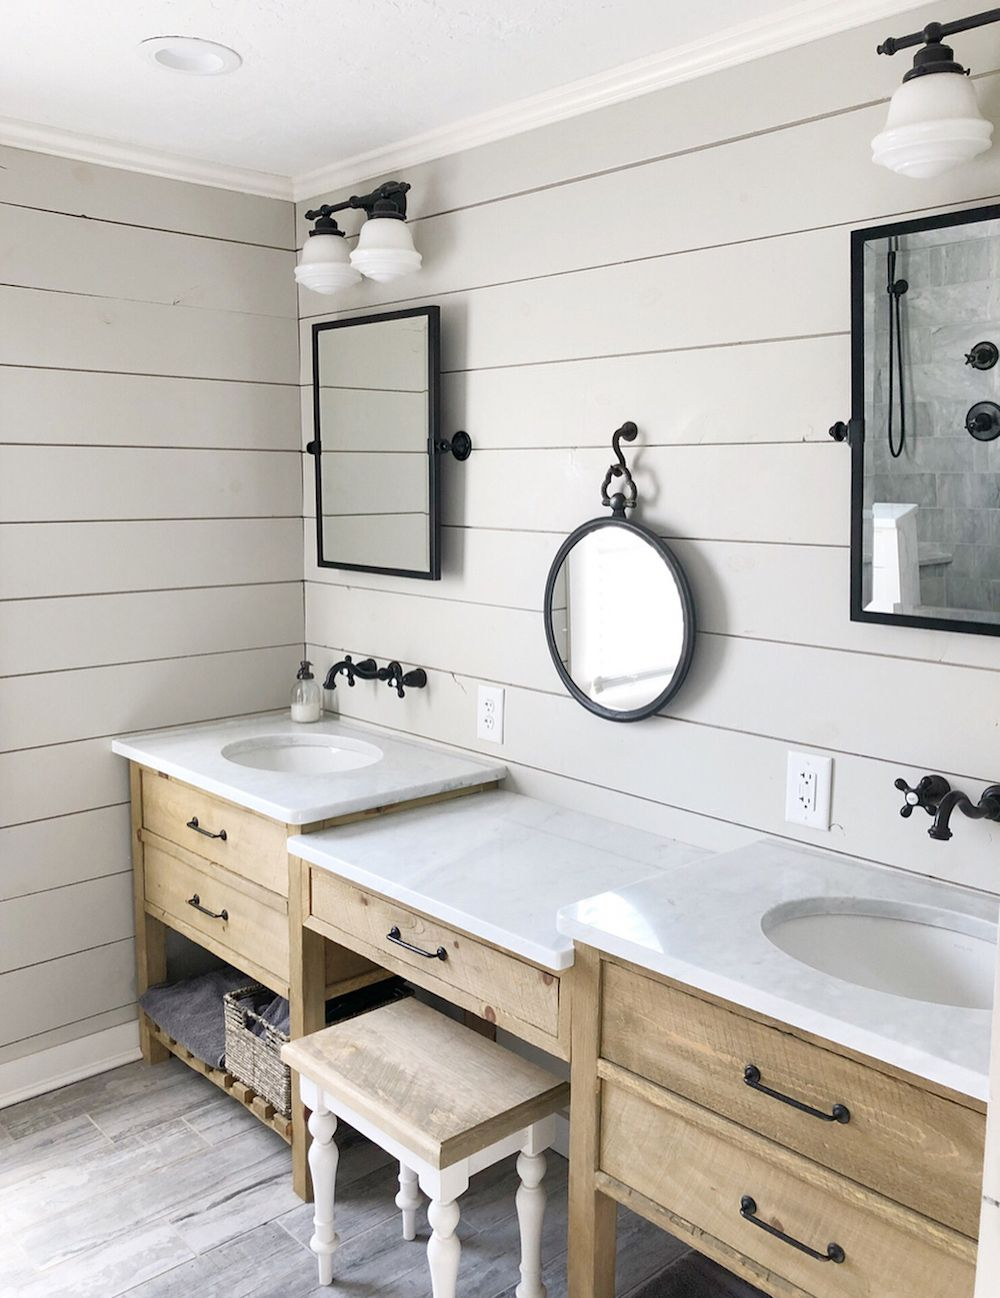 15 Farmhouse Style Decor Ideas to Get You Started on Farmhouse Bathroom Ideas  id=47352